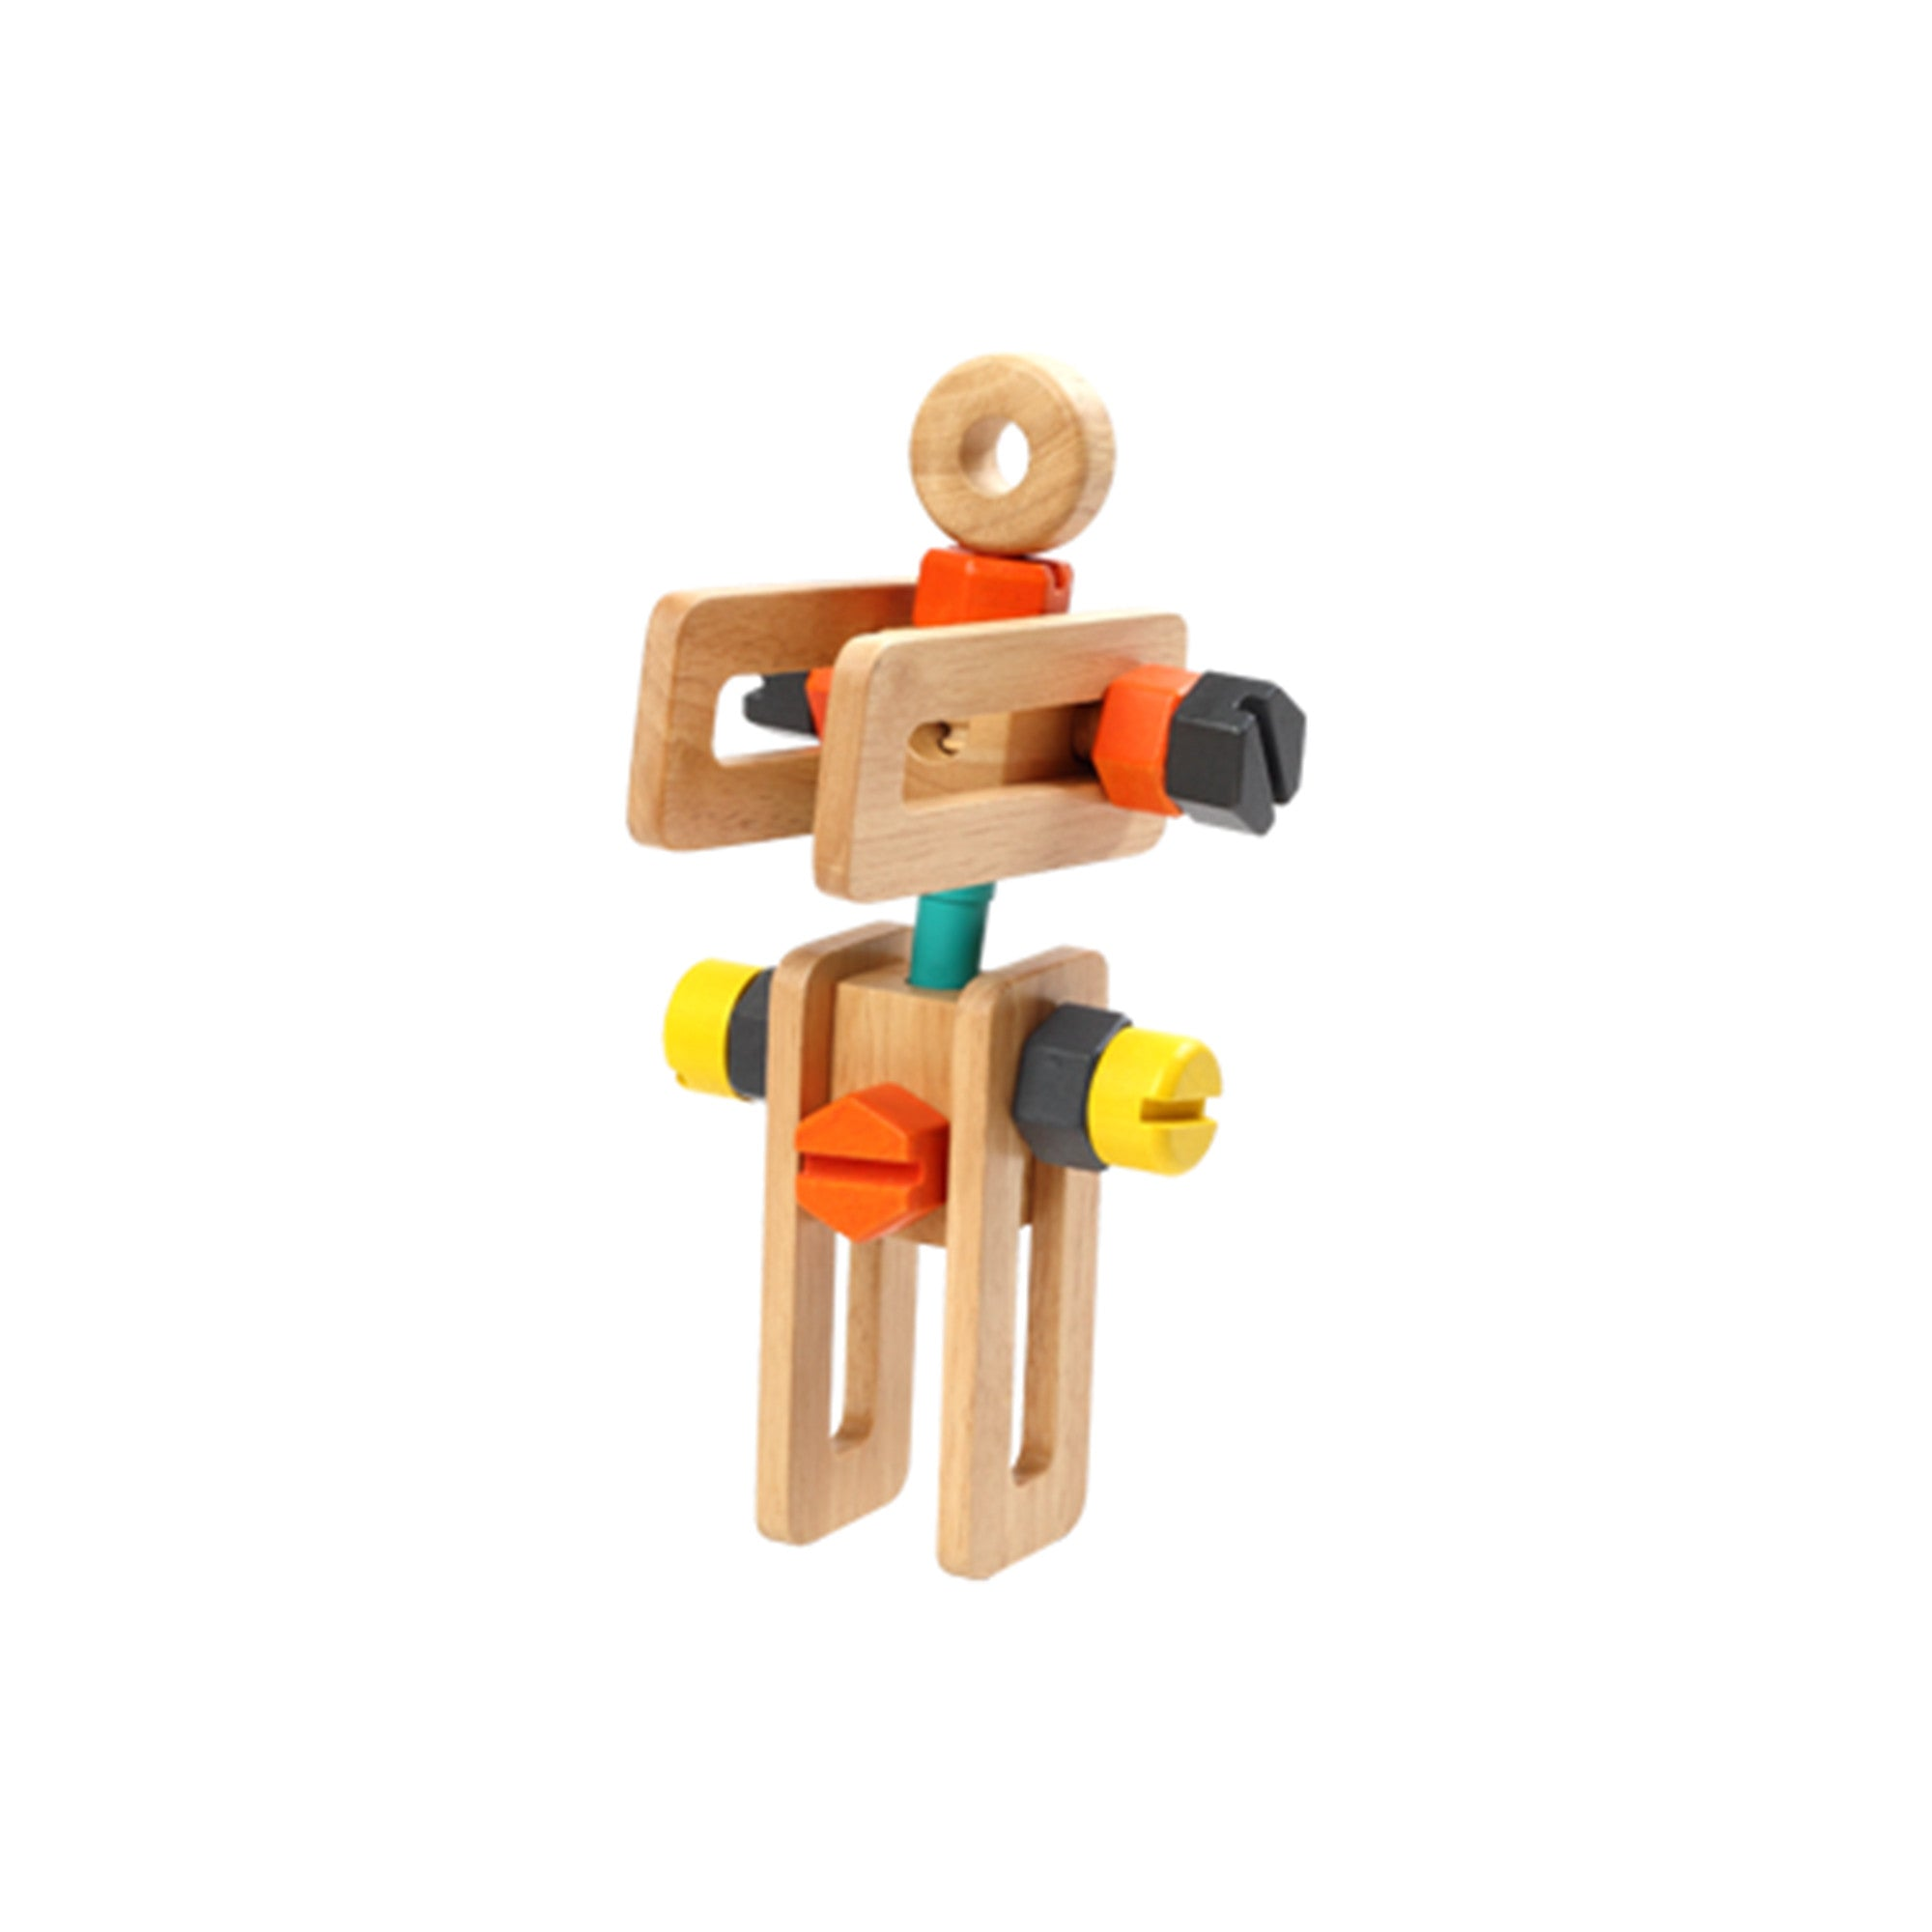 Wooden Toy Tool Set Tool Kit   - Voila - Little Earth Nest - 5